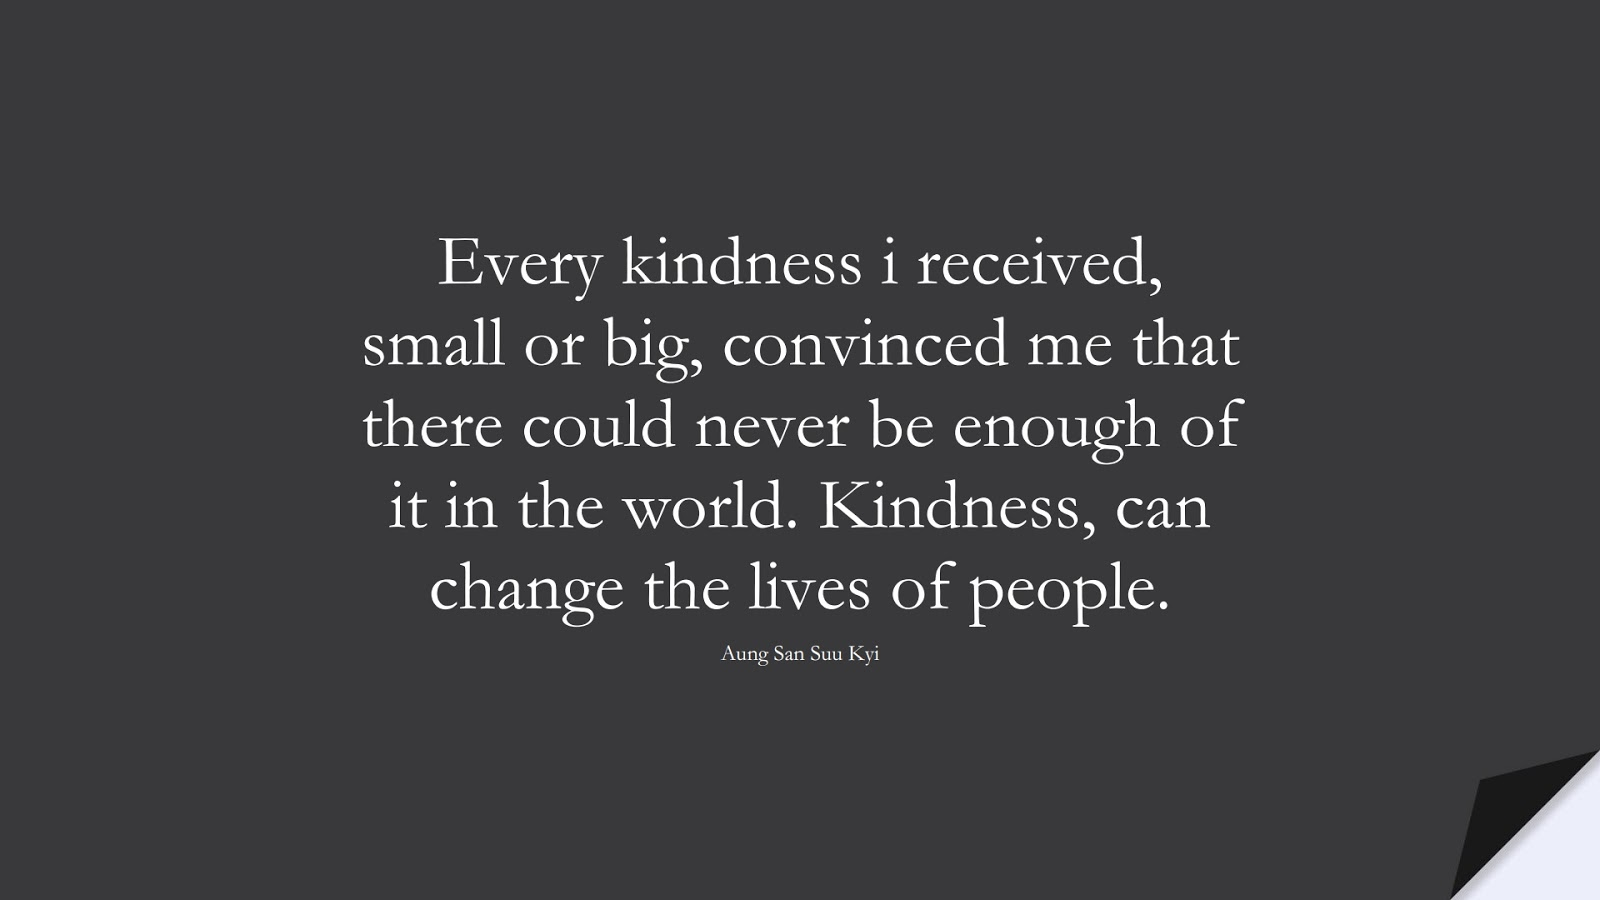 Every kindness i received, small or big, convinced me that there could never be enough of it in the world. Kindness, can change the lives of people. (Aung San Suu Kyi);  #HumanityQuotes